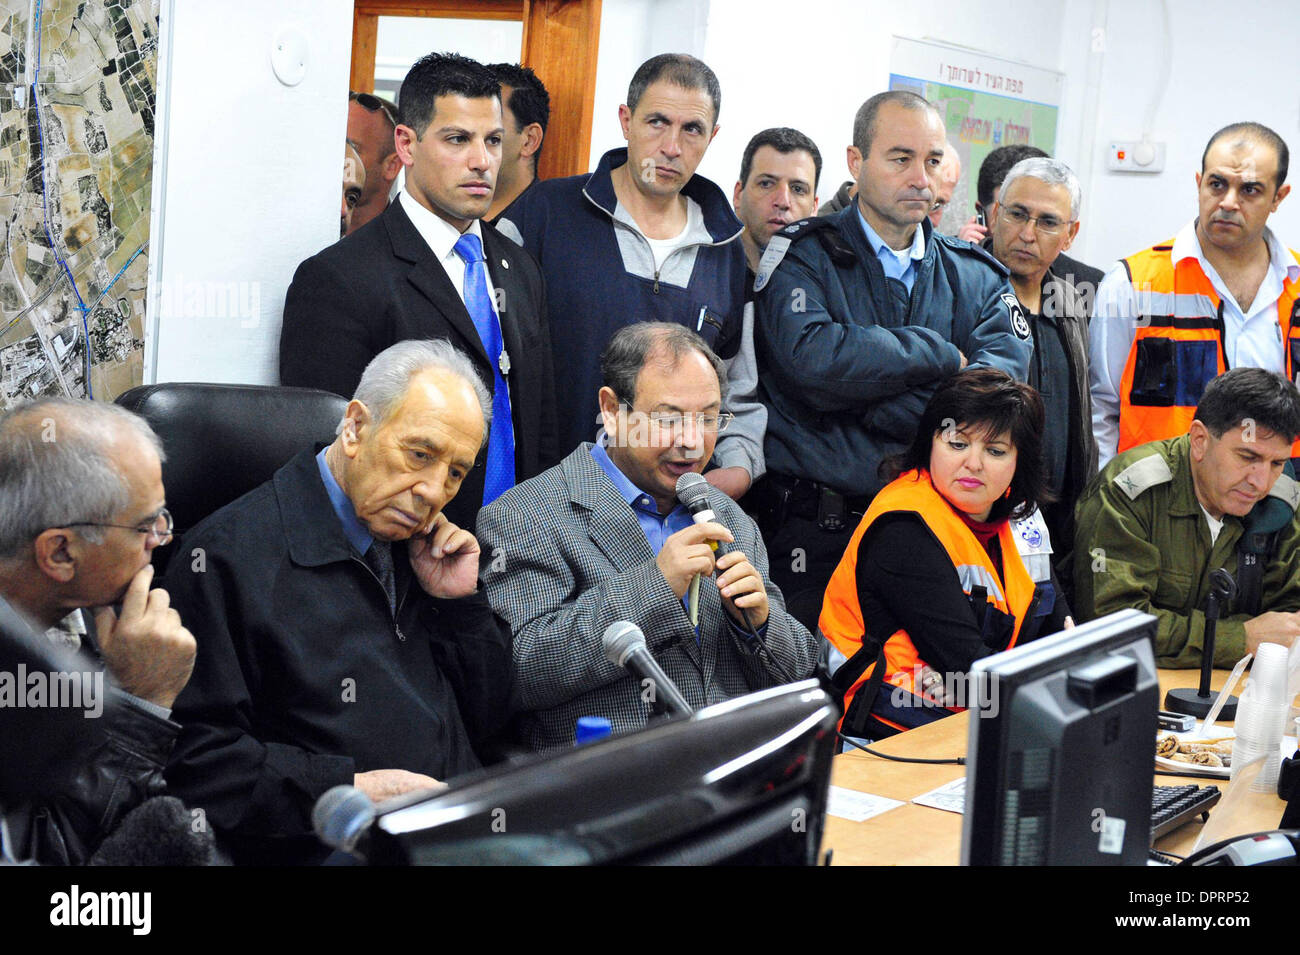 Dec 30, 2008 - Ashkelon, Israel - President SHIMON PERES is taking part in a meeting to evaluate the situation of the war in southern Israel in Ashkelon on Wednesday December 31, 2008. Peres arrived this morning in Ashkelon in order to demonstrate solidarity with the residents of the city. President Peres visited children seeking refuge in a municipal bomb shelter, visited victims  - Stock Image